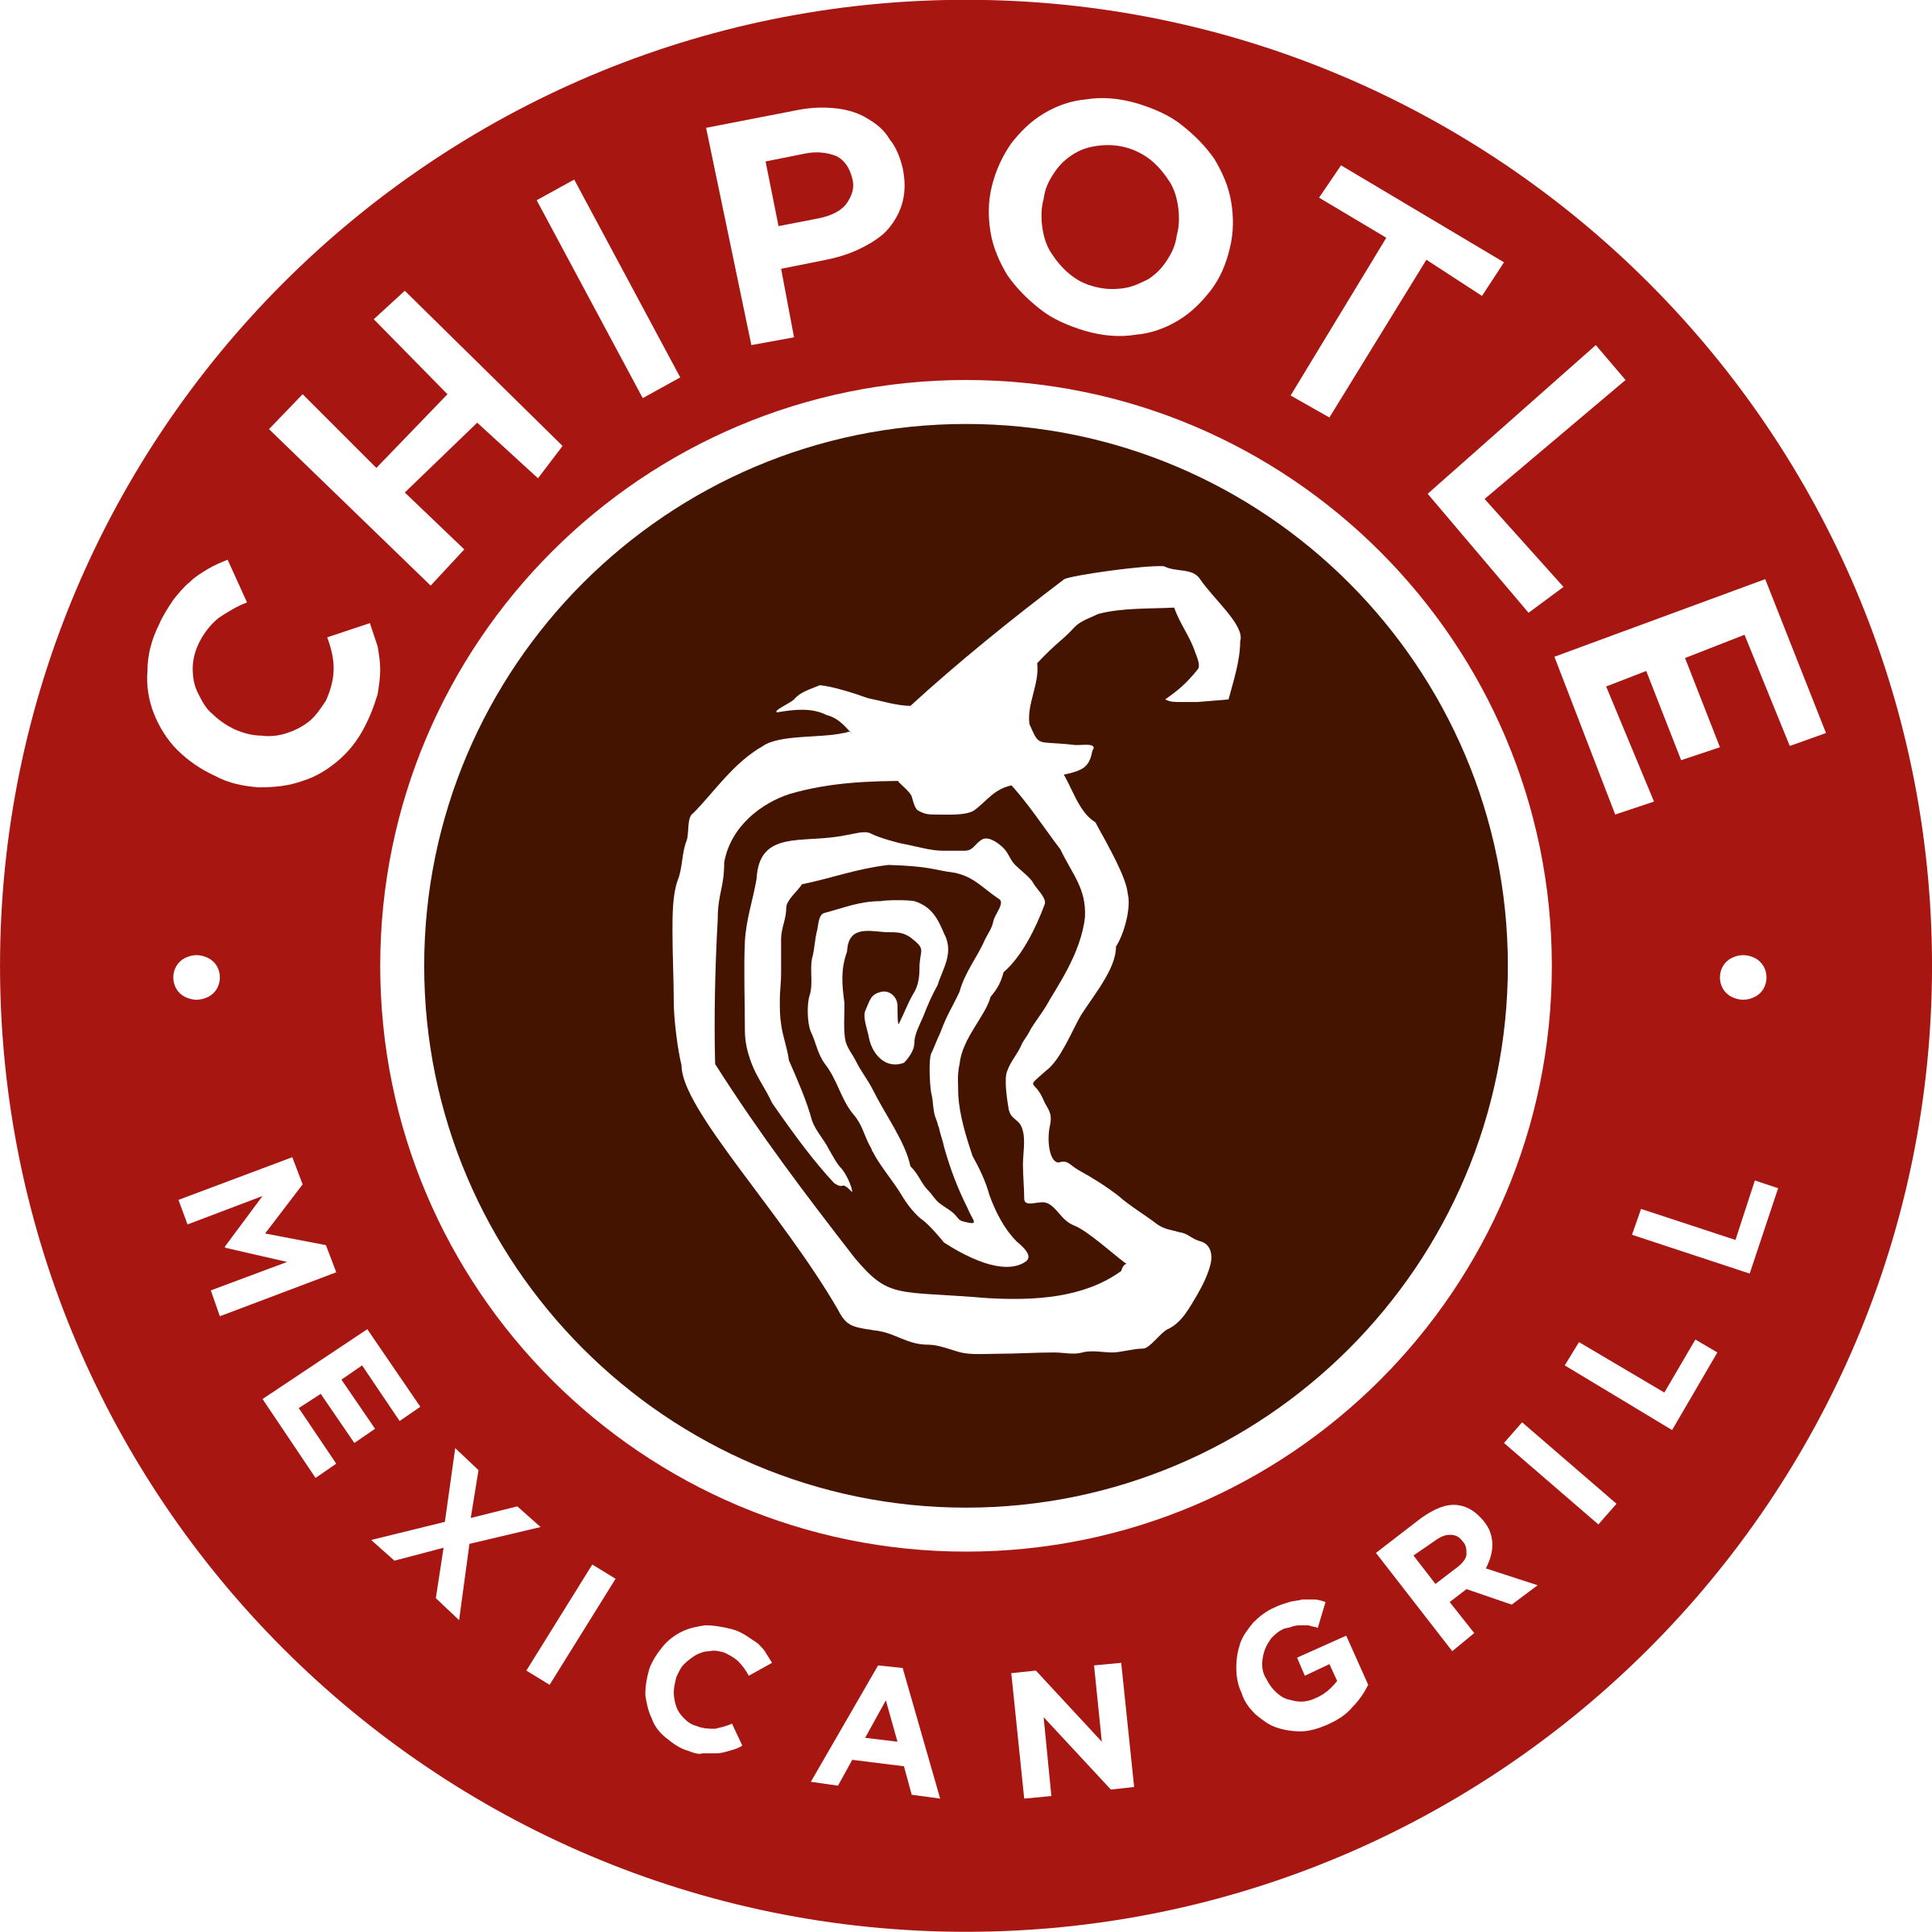 Chipotle logo png. Mexican grill transparent svg